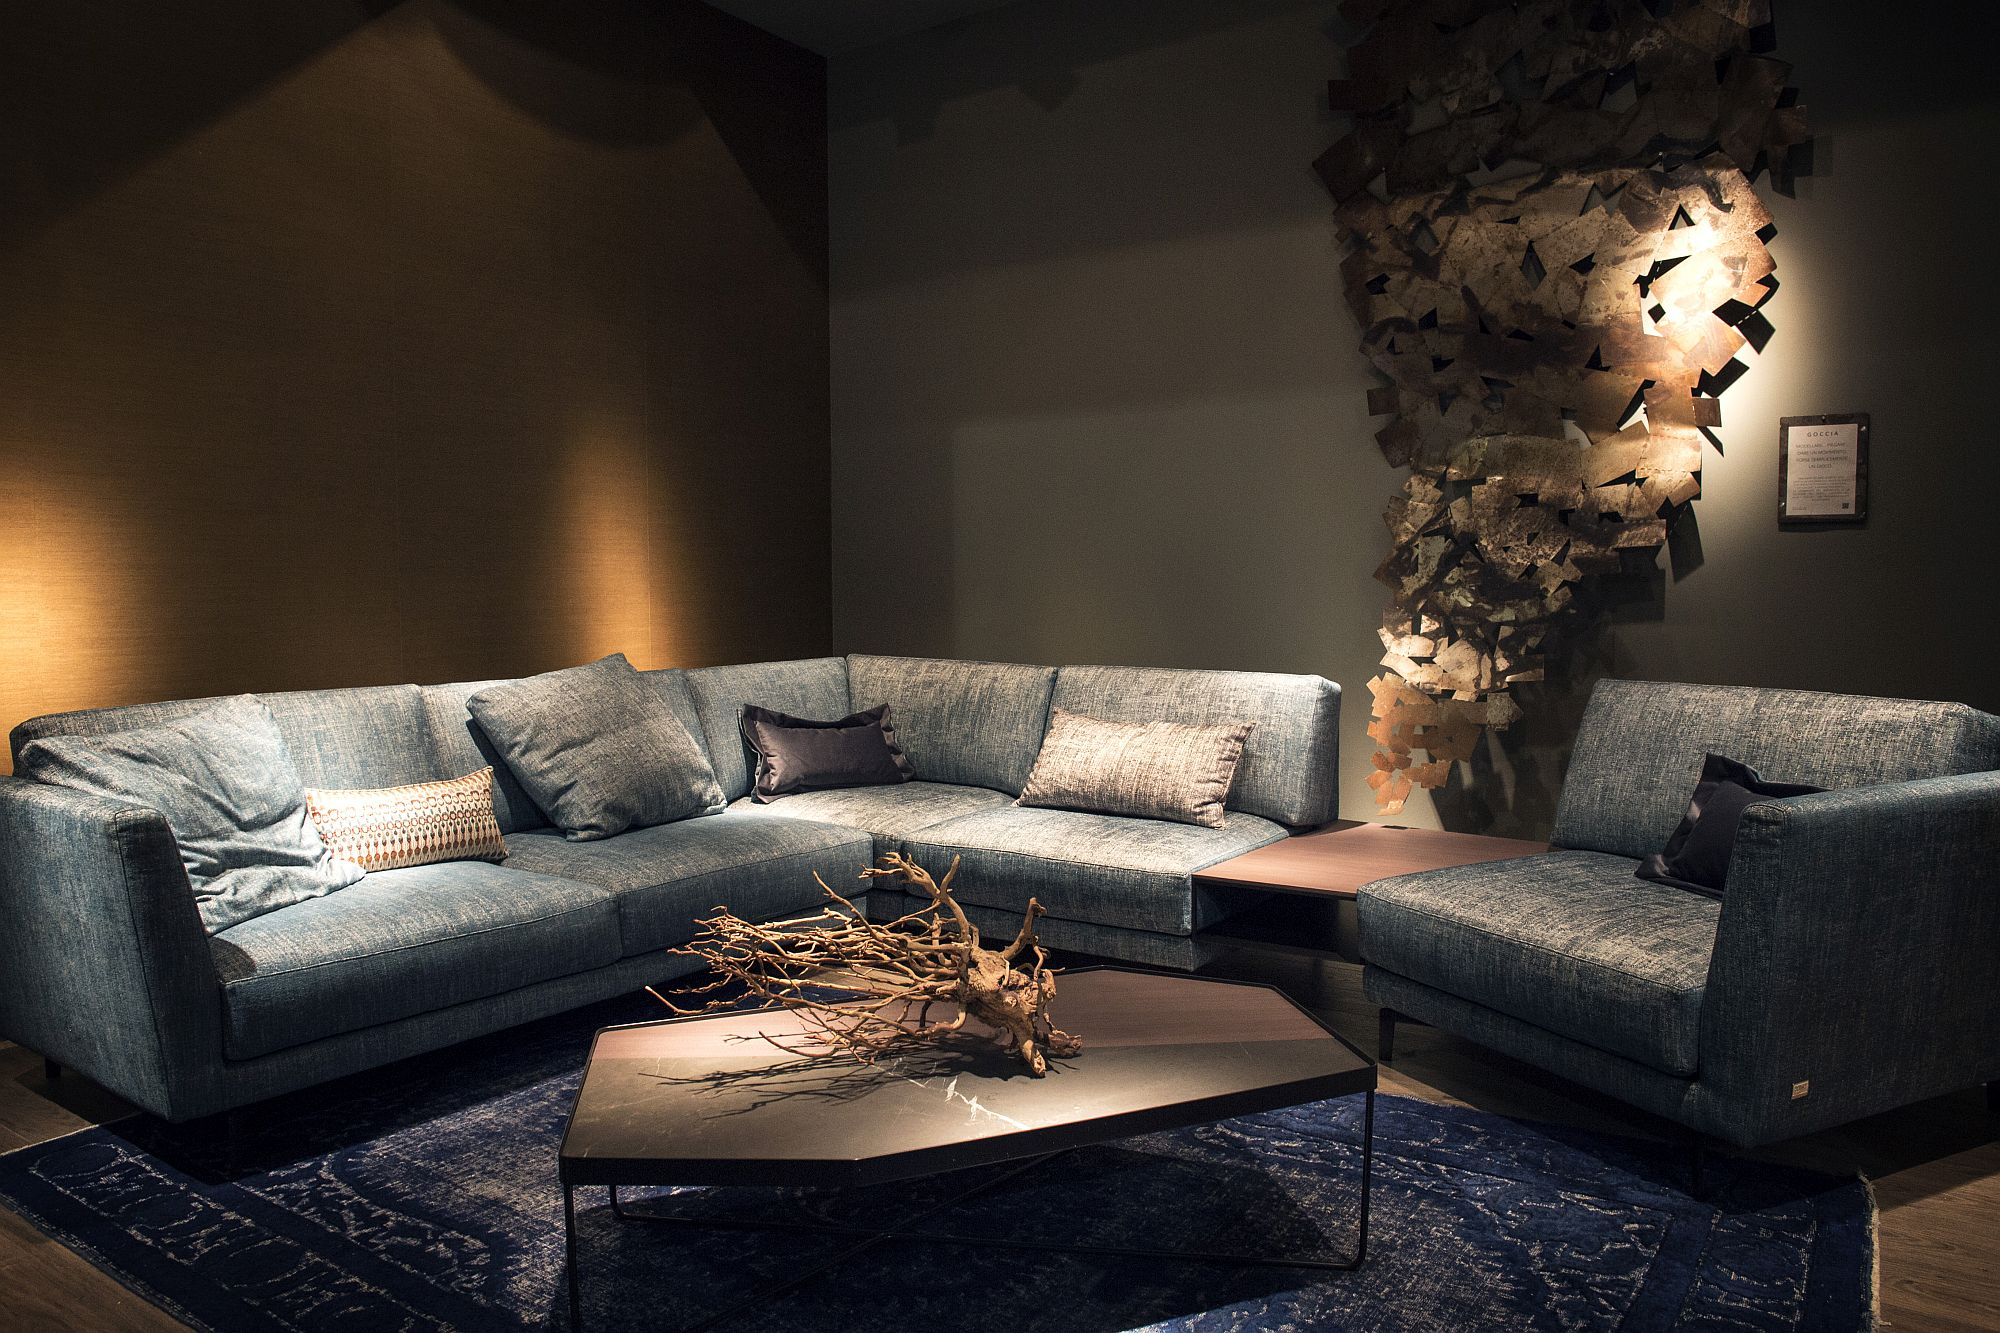 Subtle addition of color using the sofa adds to the appeal of the neutral living room